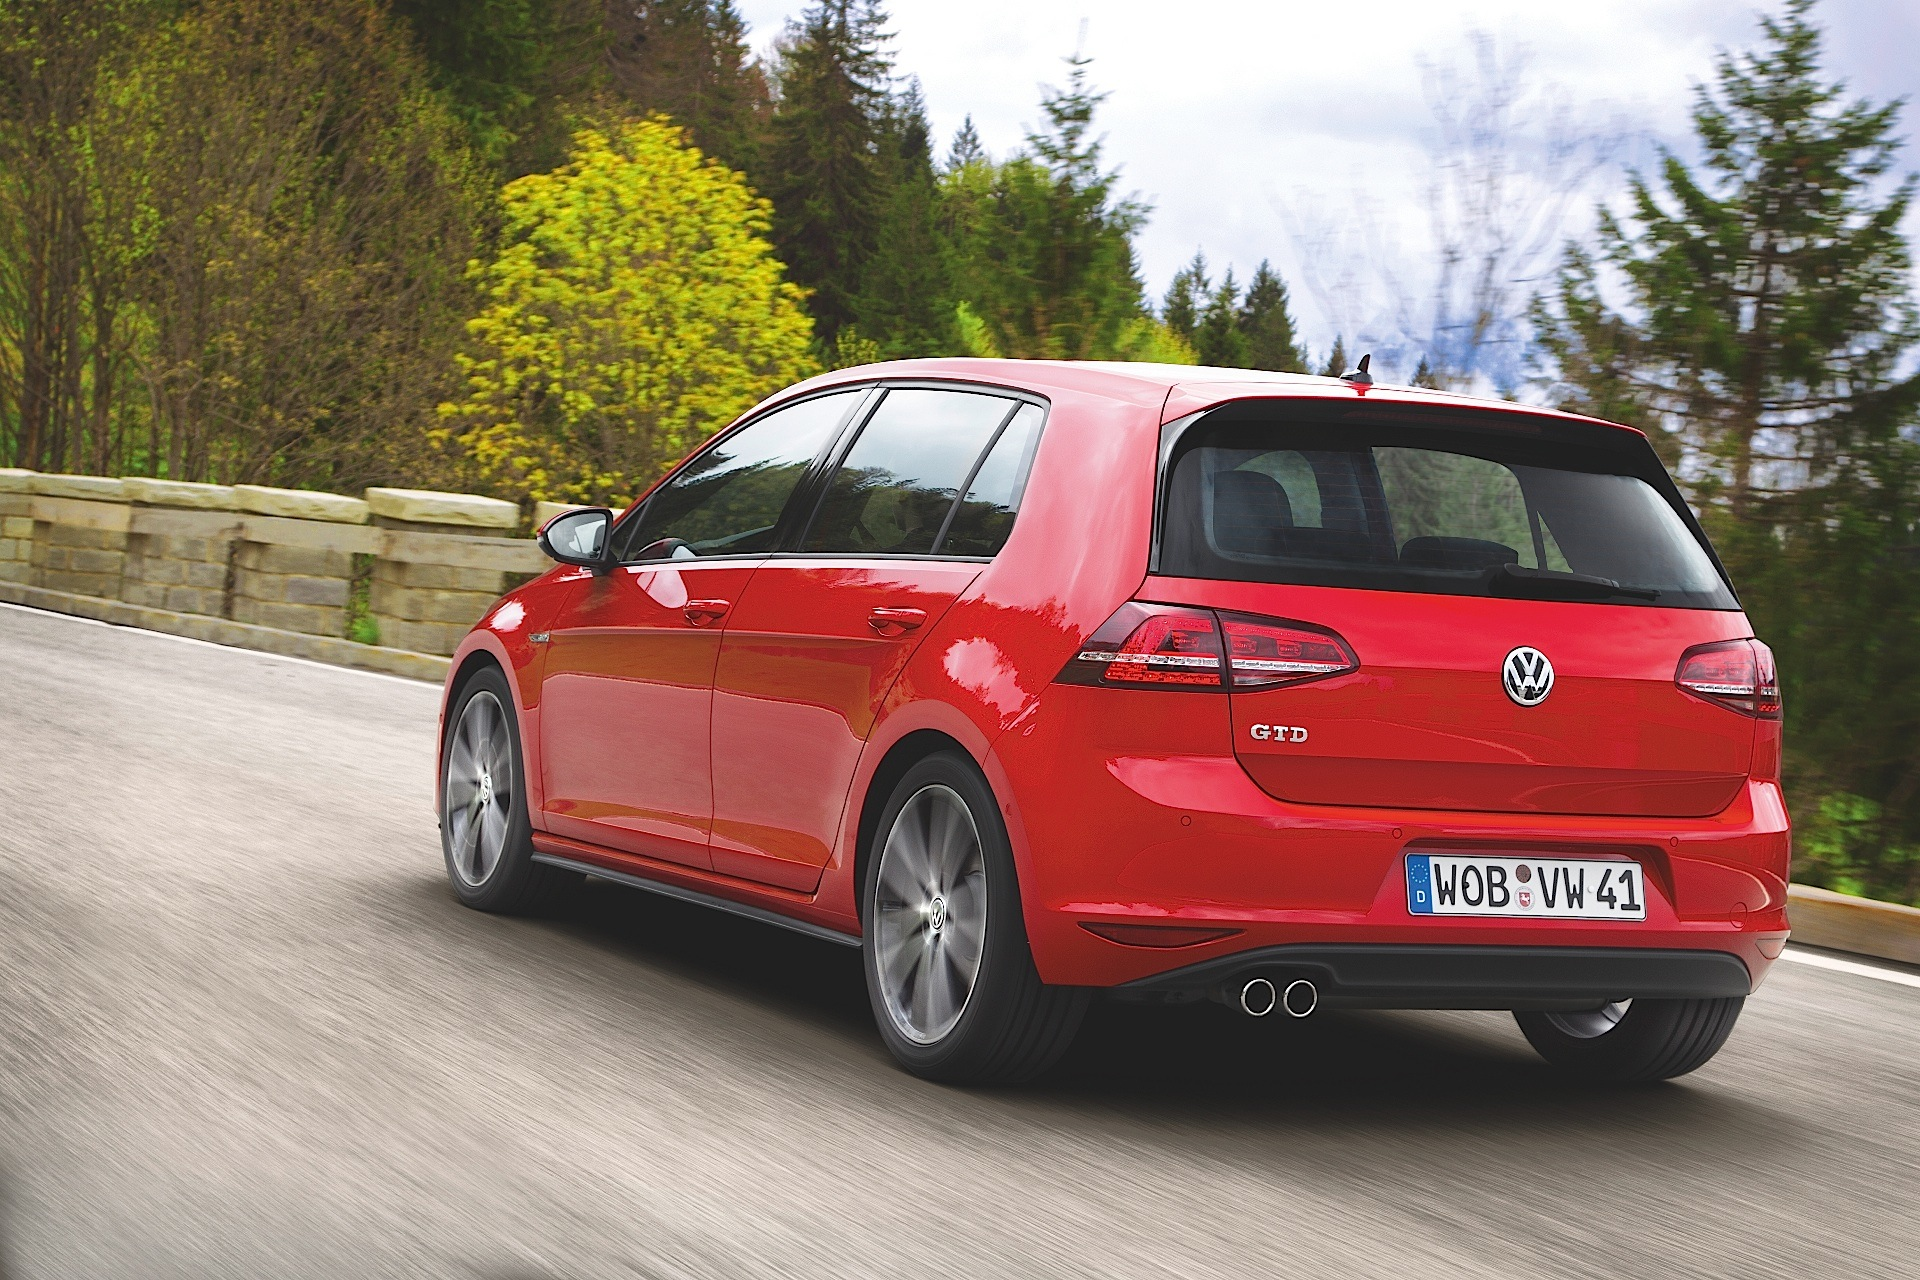 VOLKSWAGEN Golf GTD 5 Doors - 2013, 2014, 2015, 2016, 2017 - autoevolution